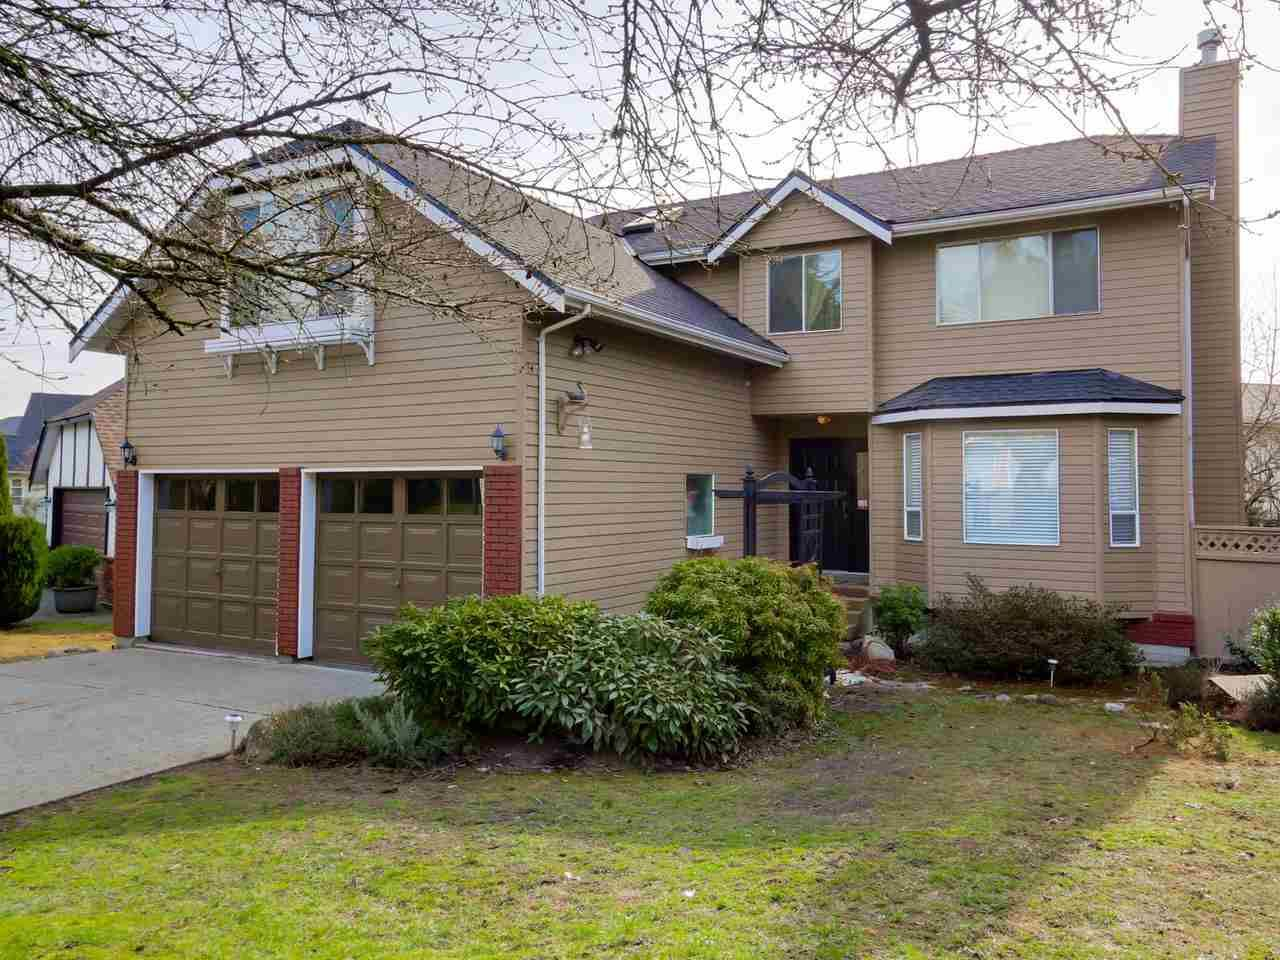 "Main Photo: 2868 TEMPE KNOLL Drive in North Vancouver: Tempe House for sale in ""TEMPE"" : MLS®# R2046593"